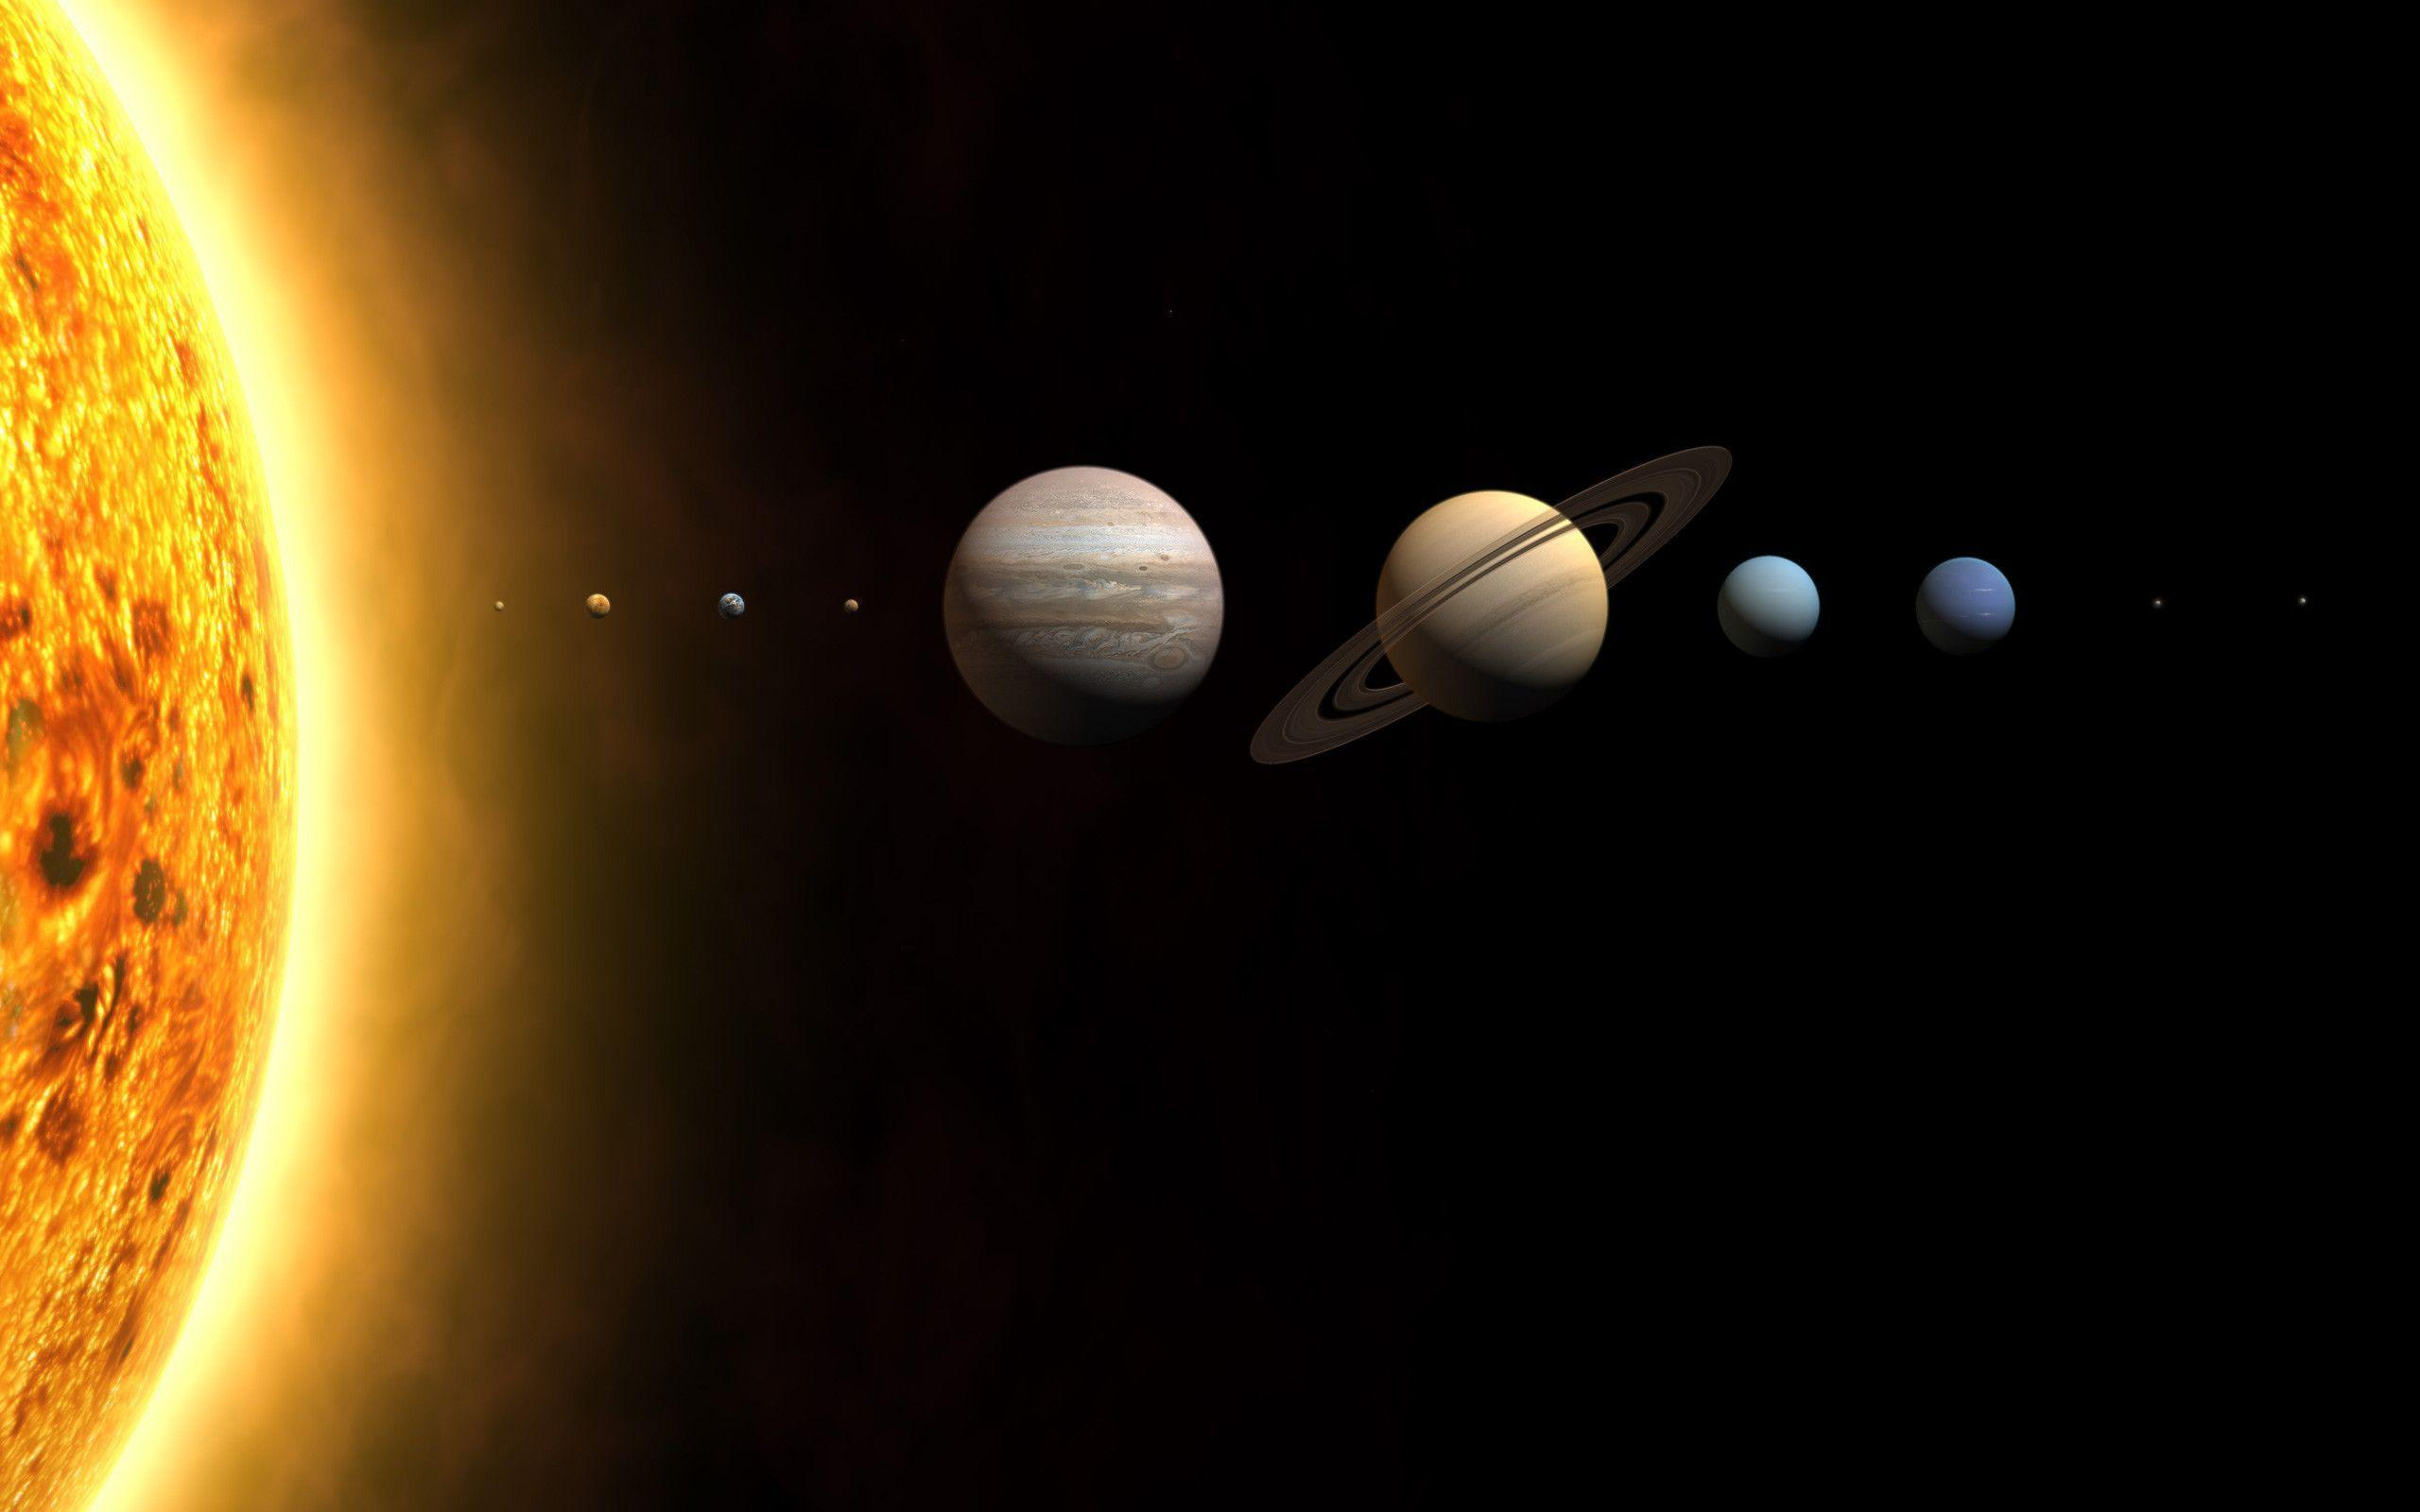 Solar System Planets Wallpapers Top Free Solar System